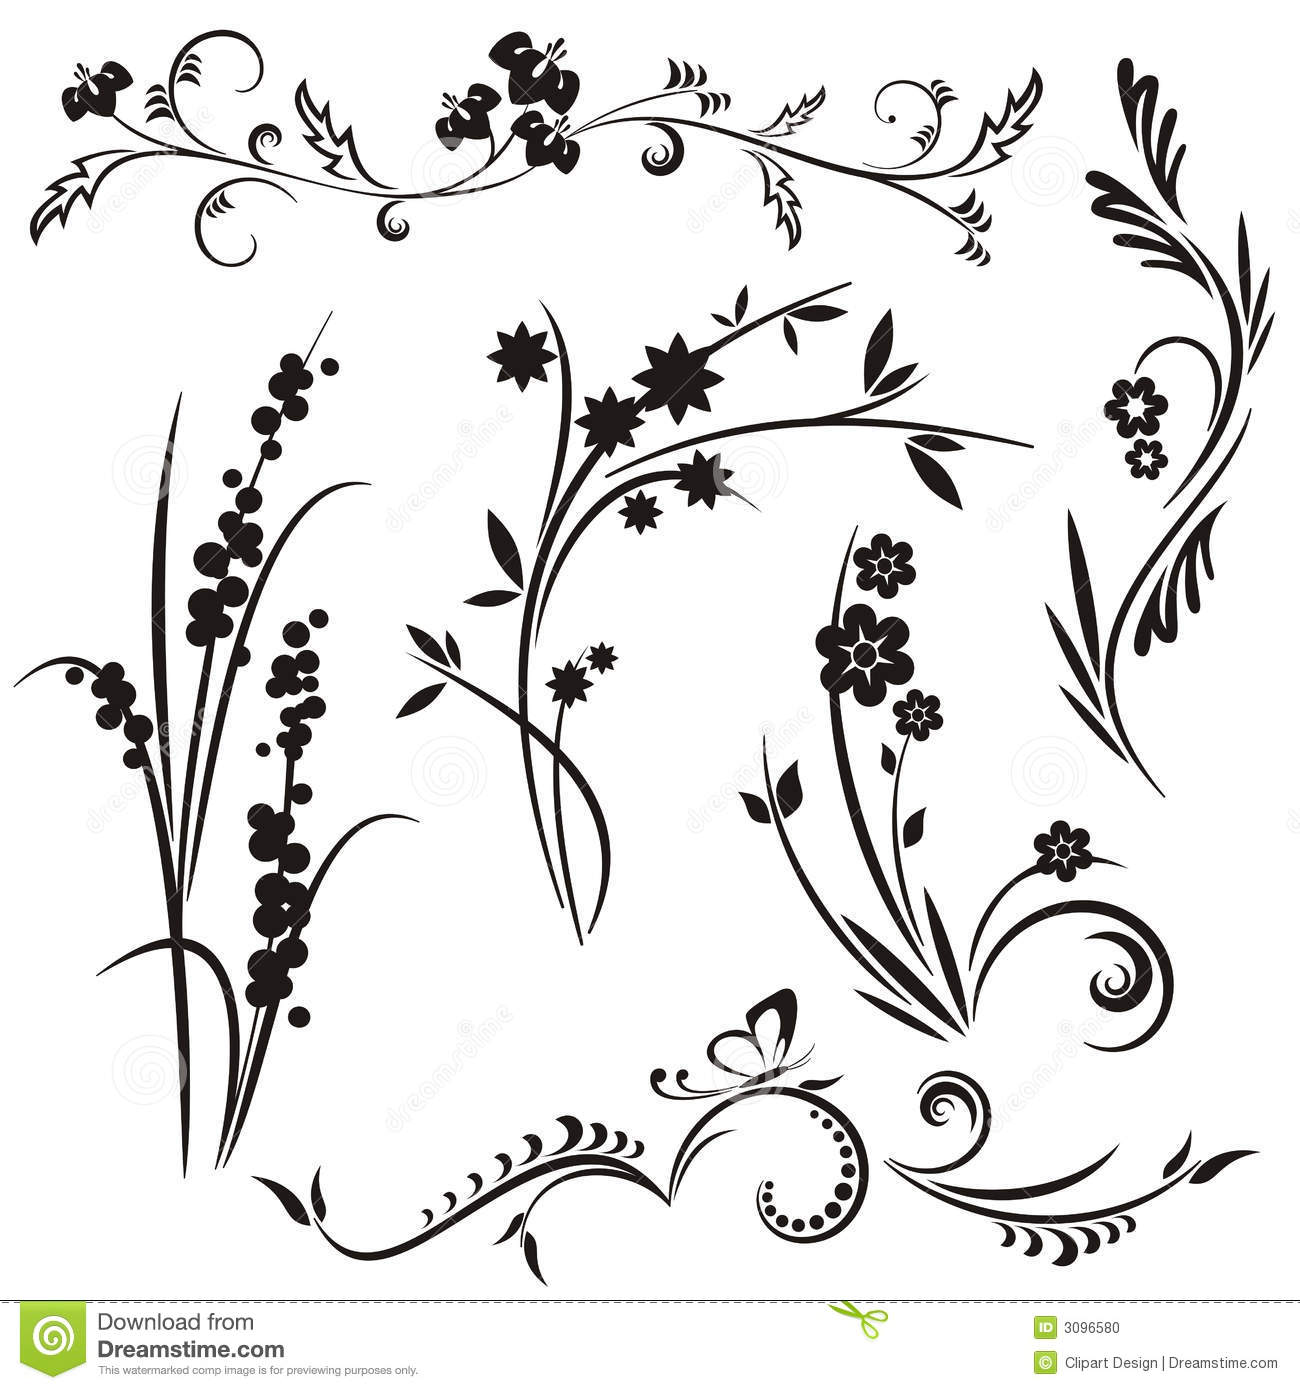 Japanese Designs japanese floral design series stock photo - image: 3096630